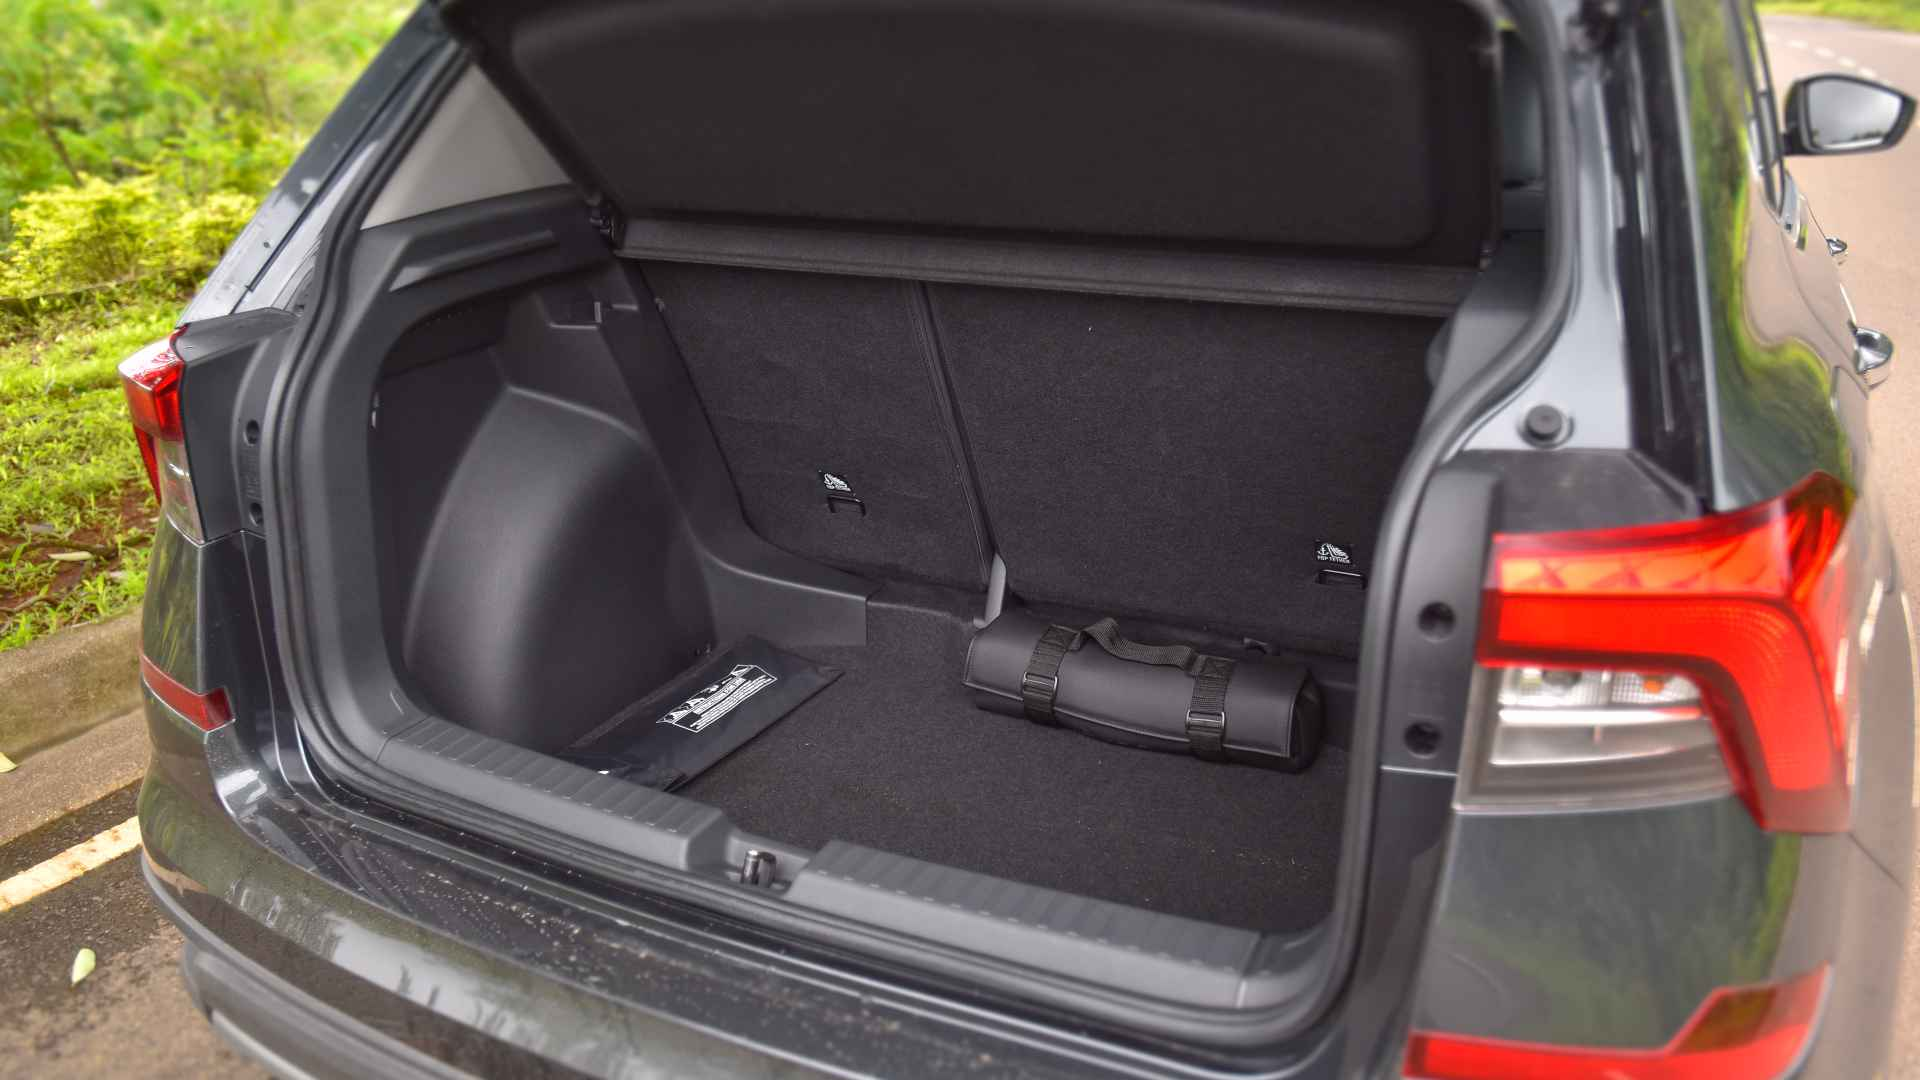 385-litre boot is amongst the smallest in the segment, and the loading lip is high, too. Image: Overdrive/Anis Shaikh